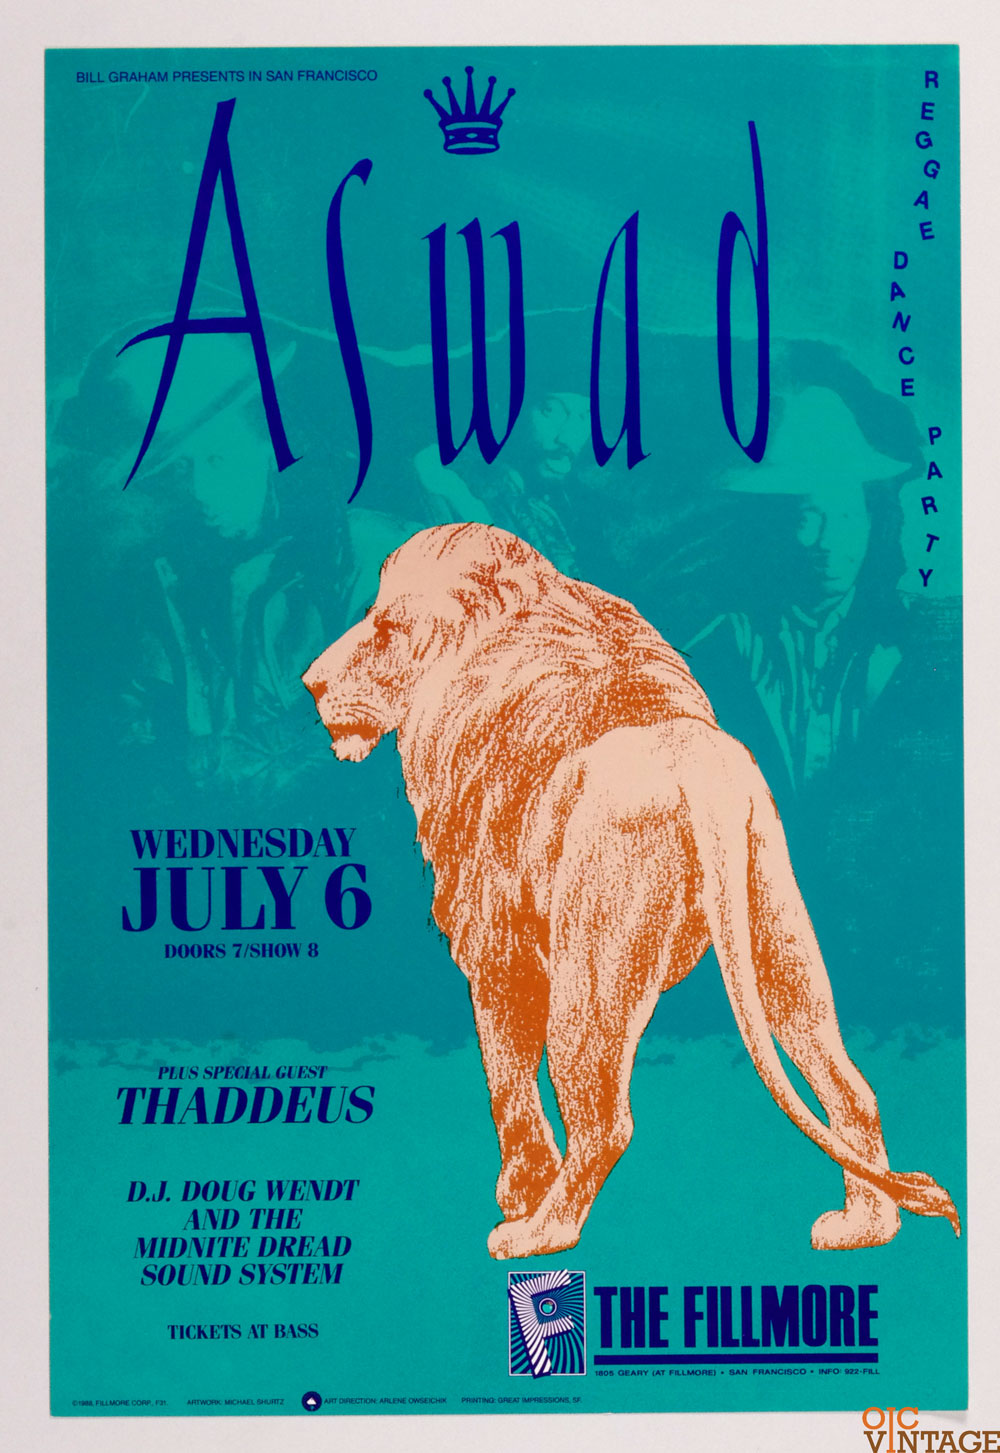 New Fillmore F031 Poster Aswad Thaddeus 1988 Jul 6